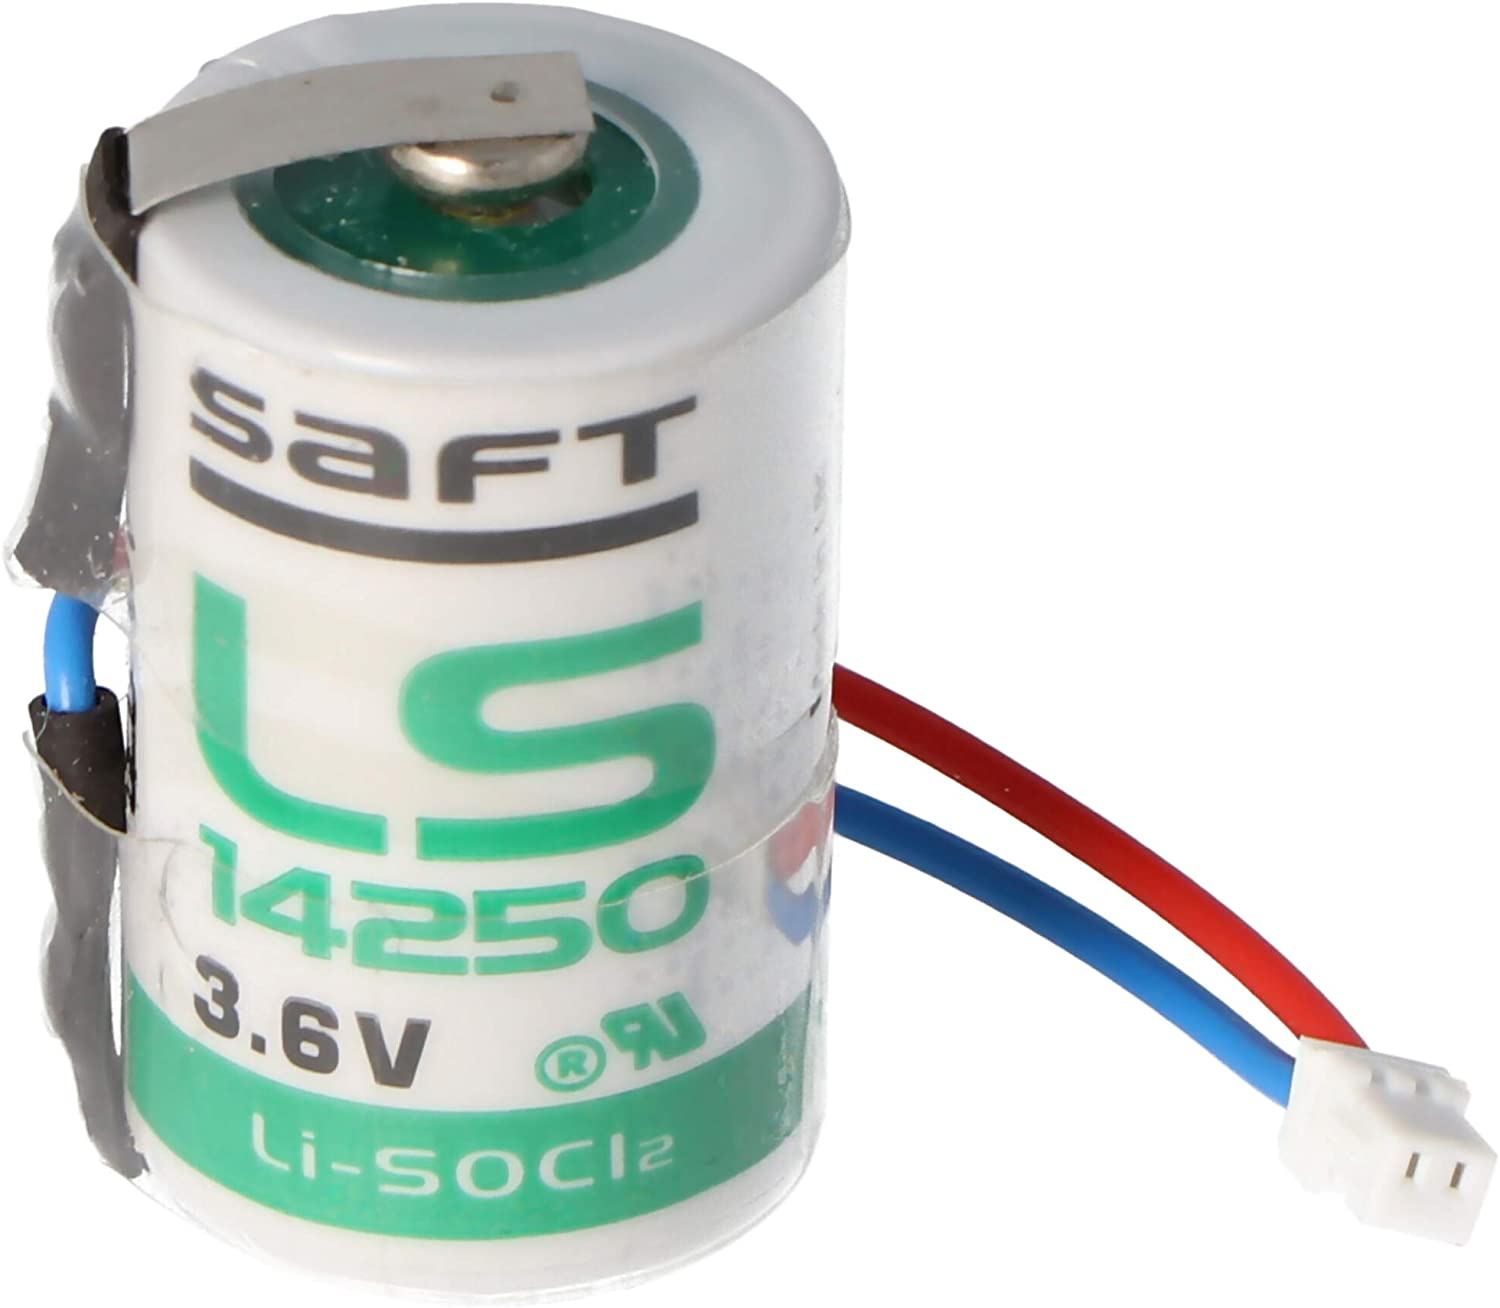 Saft Lithium 3 6 V Battery Ls14250 With Cable And Plug Elektronik